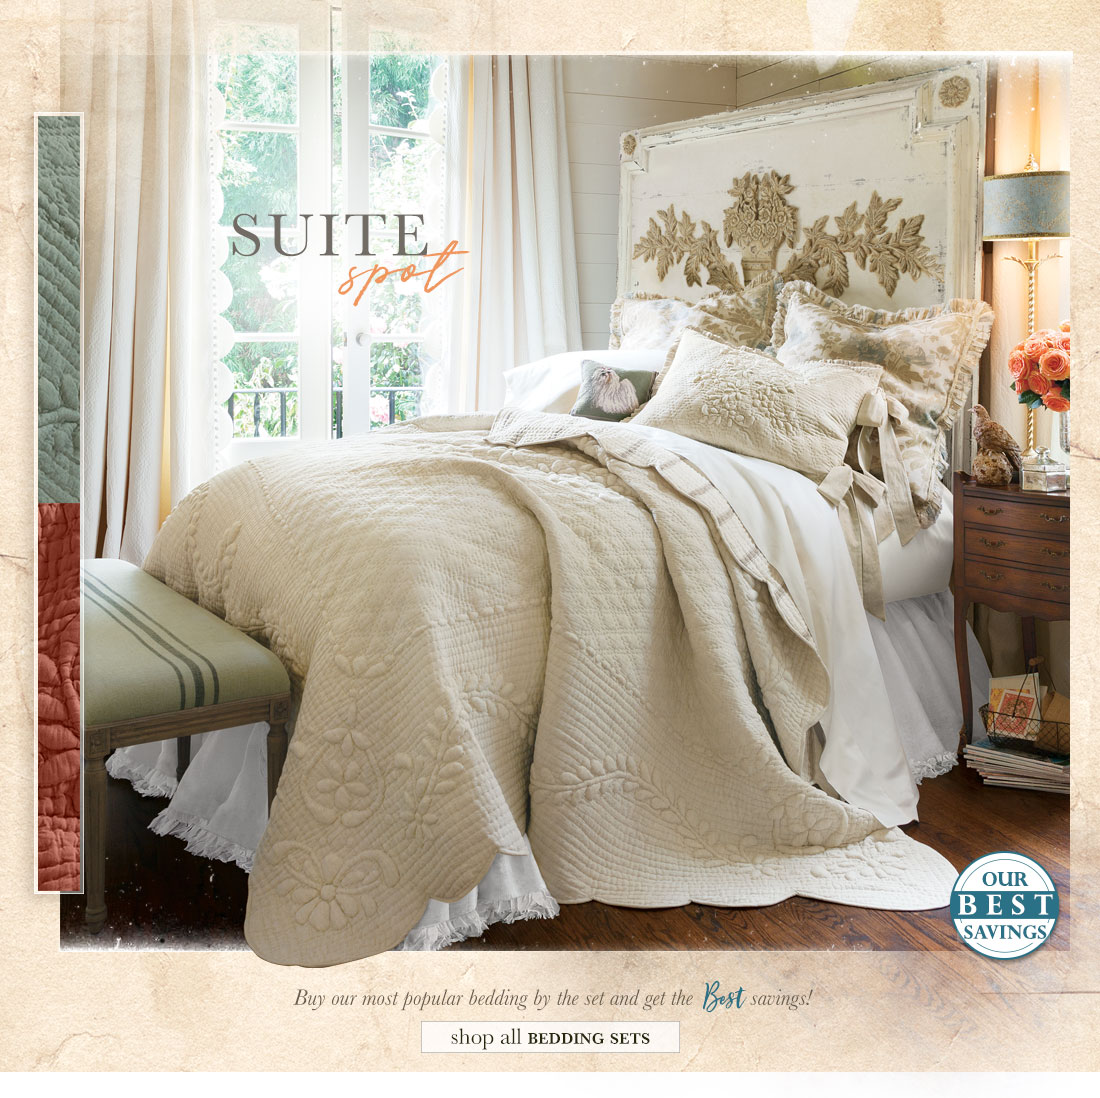 Suite Spot - shop all bedding sets